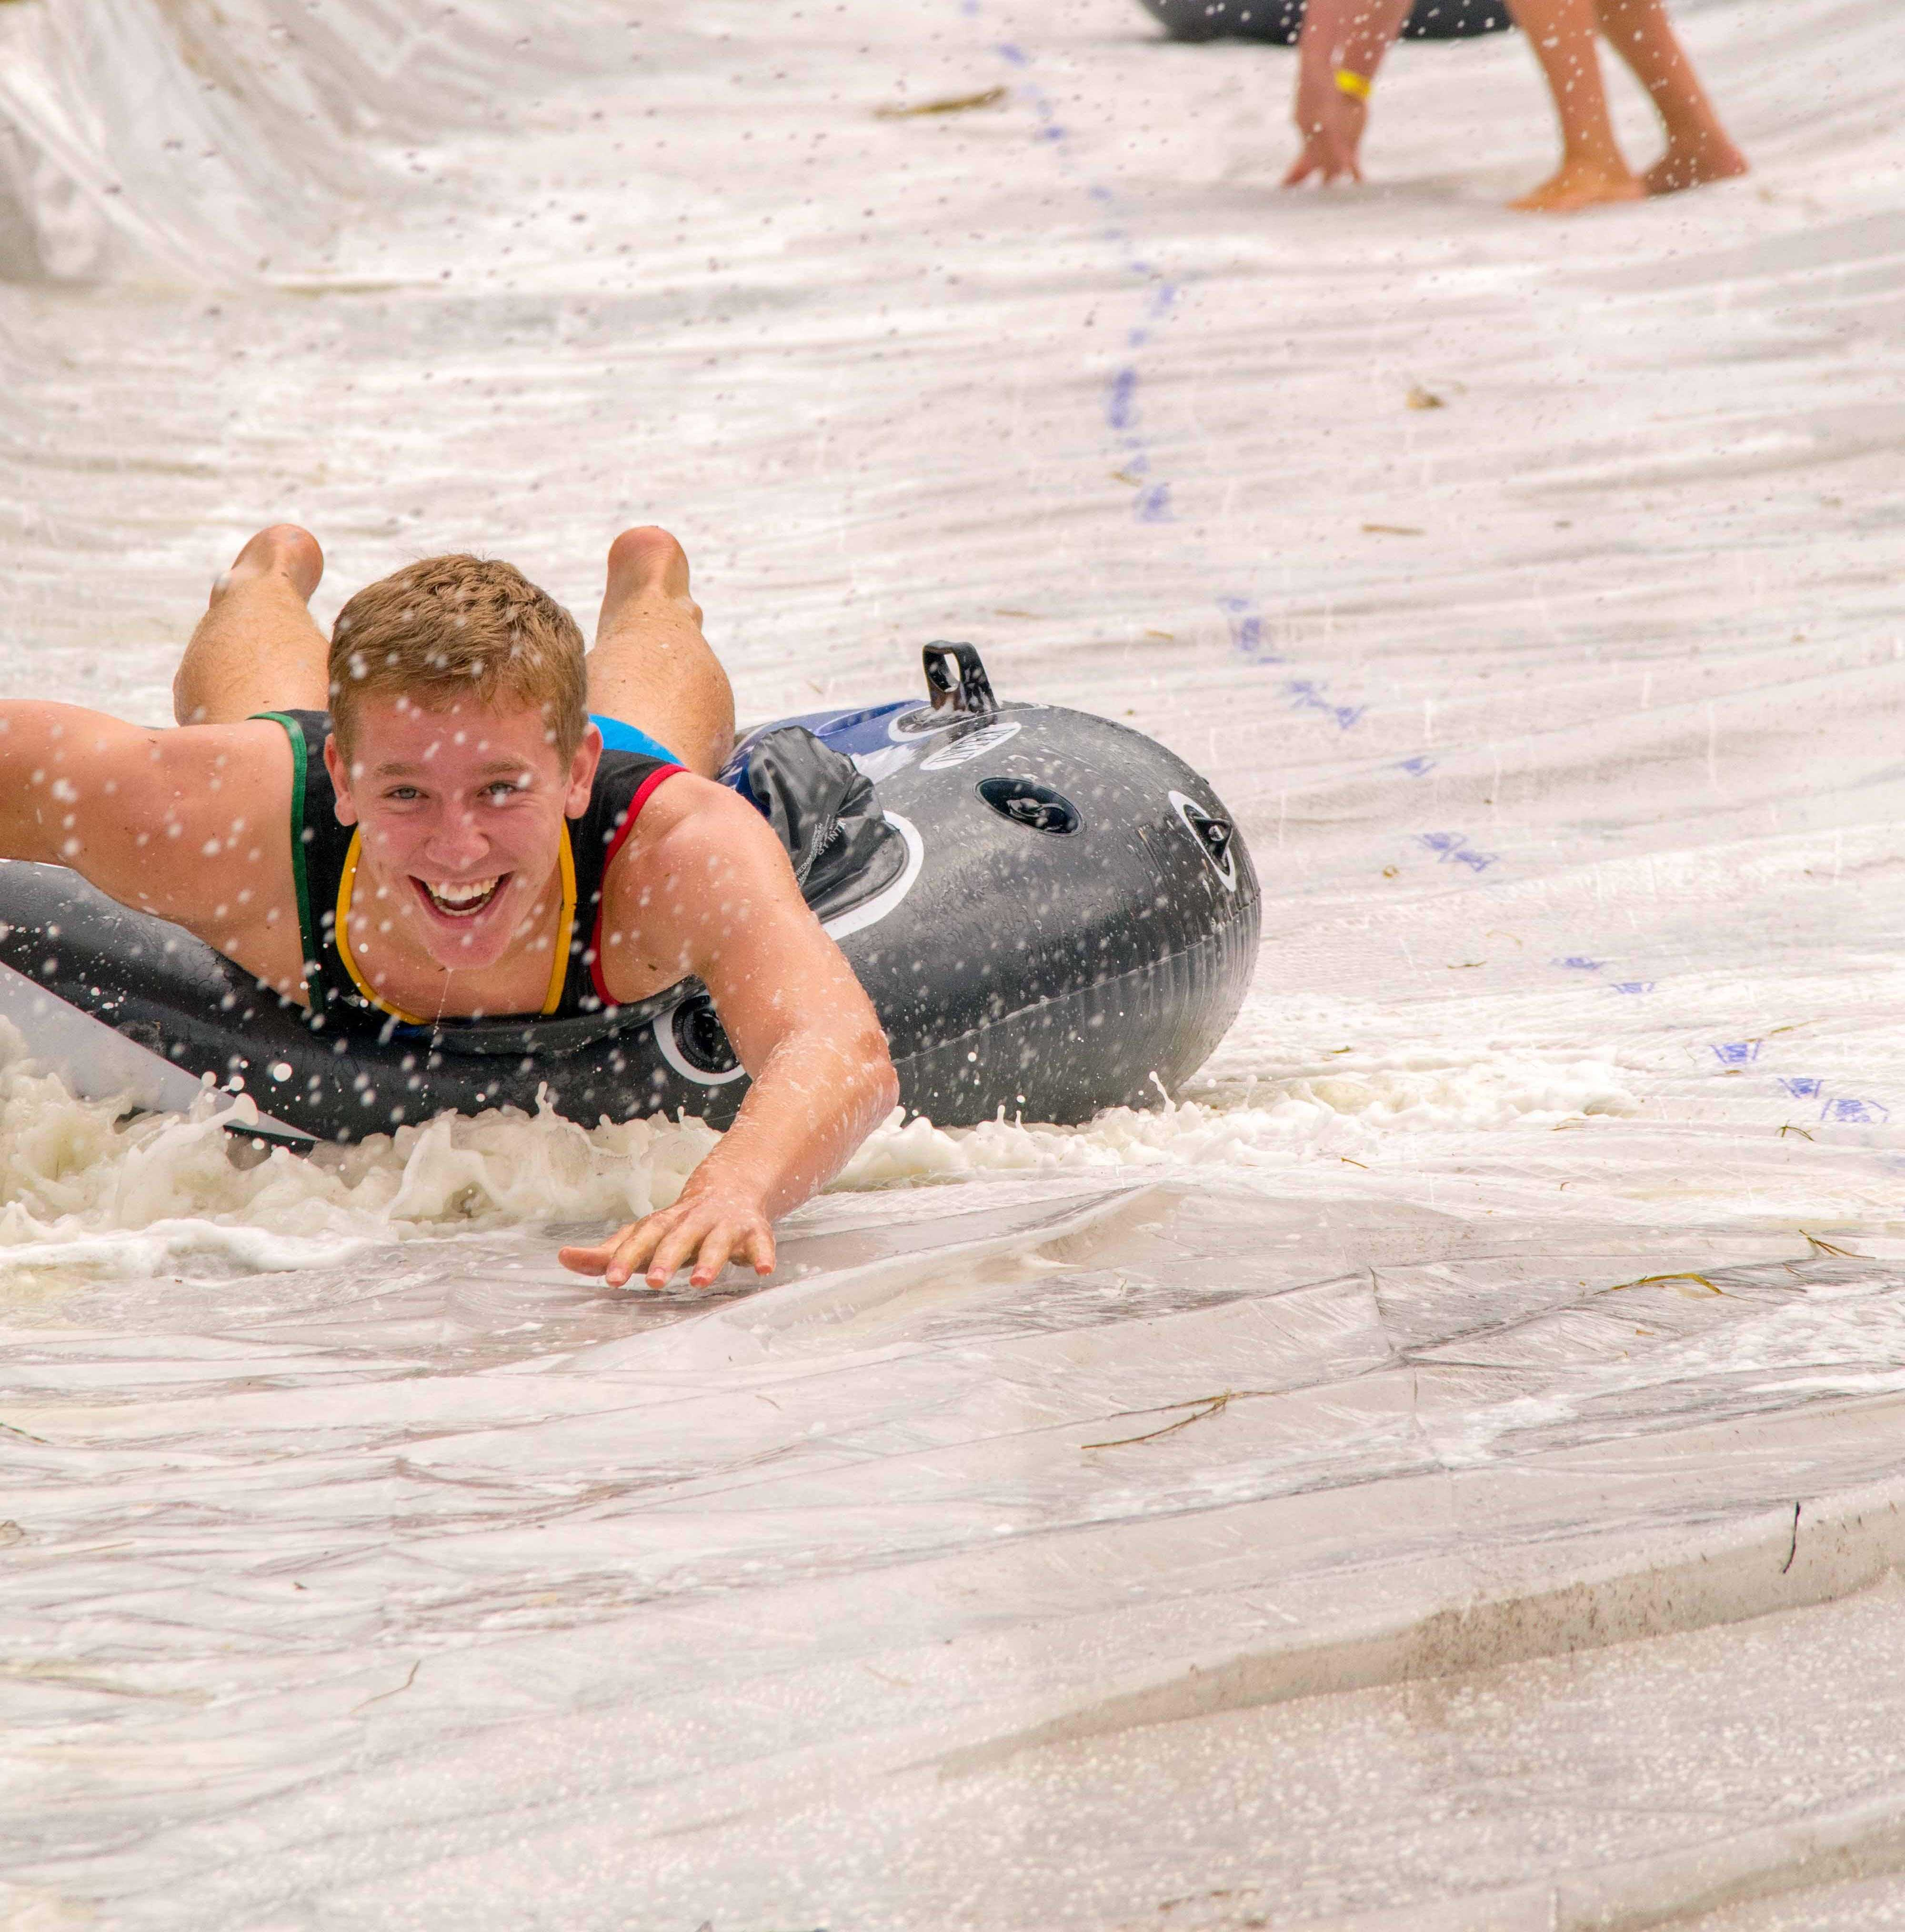 Jace Jirak, sophomore potential business major., slides down the 200 foot long slip and slide. The slide was made of hay bails and plastic sheets